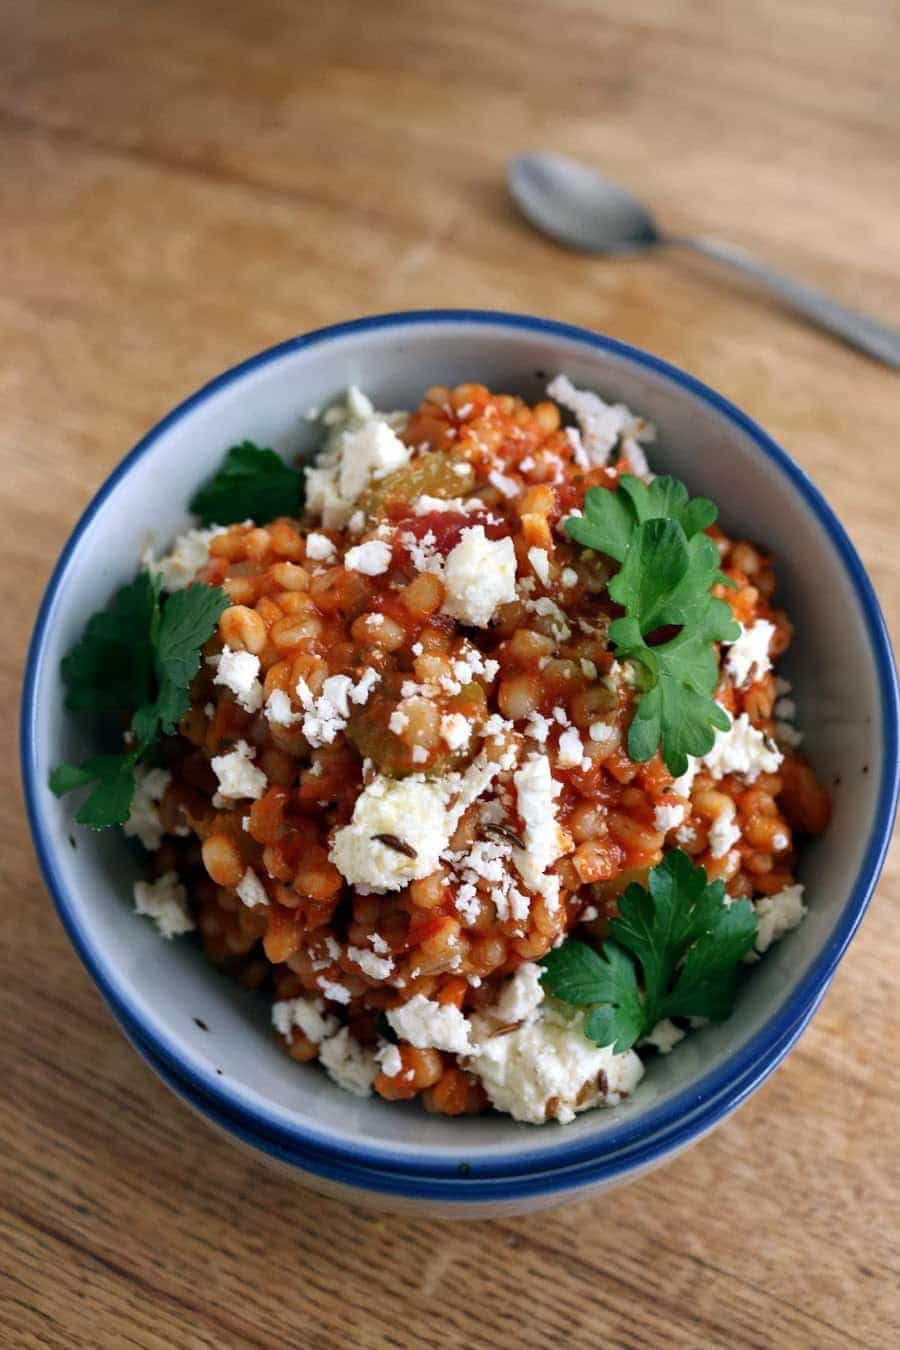 http://firsttimefoods.com/barley-risotto-with-feta